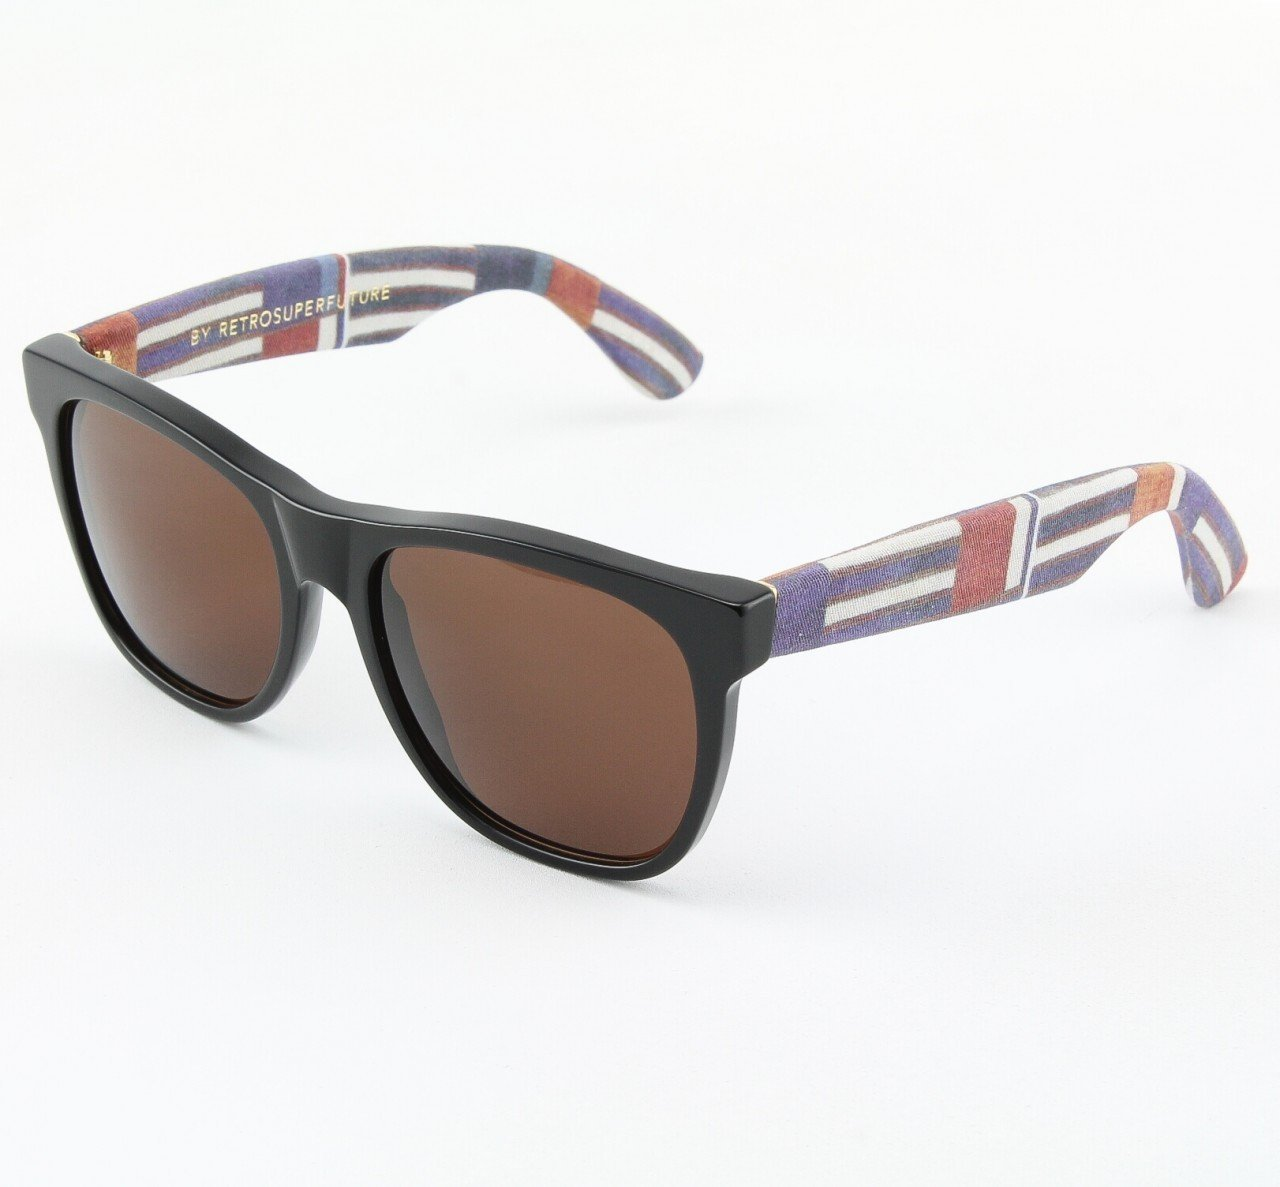 Super Classic 799/3T Sunglasses Fabric Pattern with Black Zeiss Lenses by RETROSUPERFUTURE